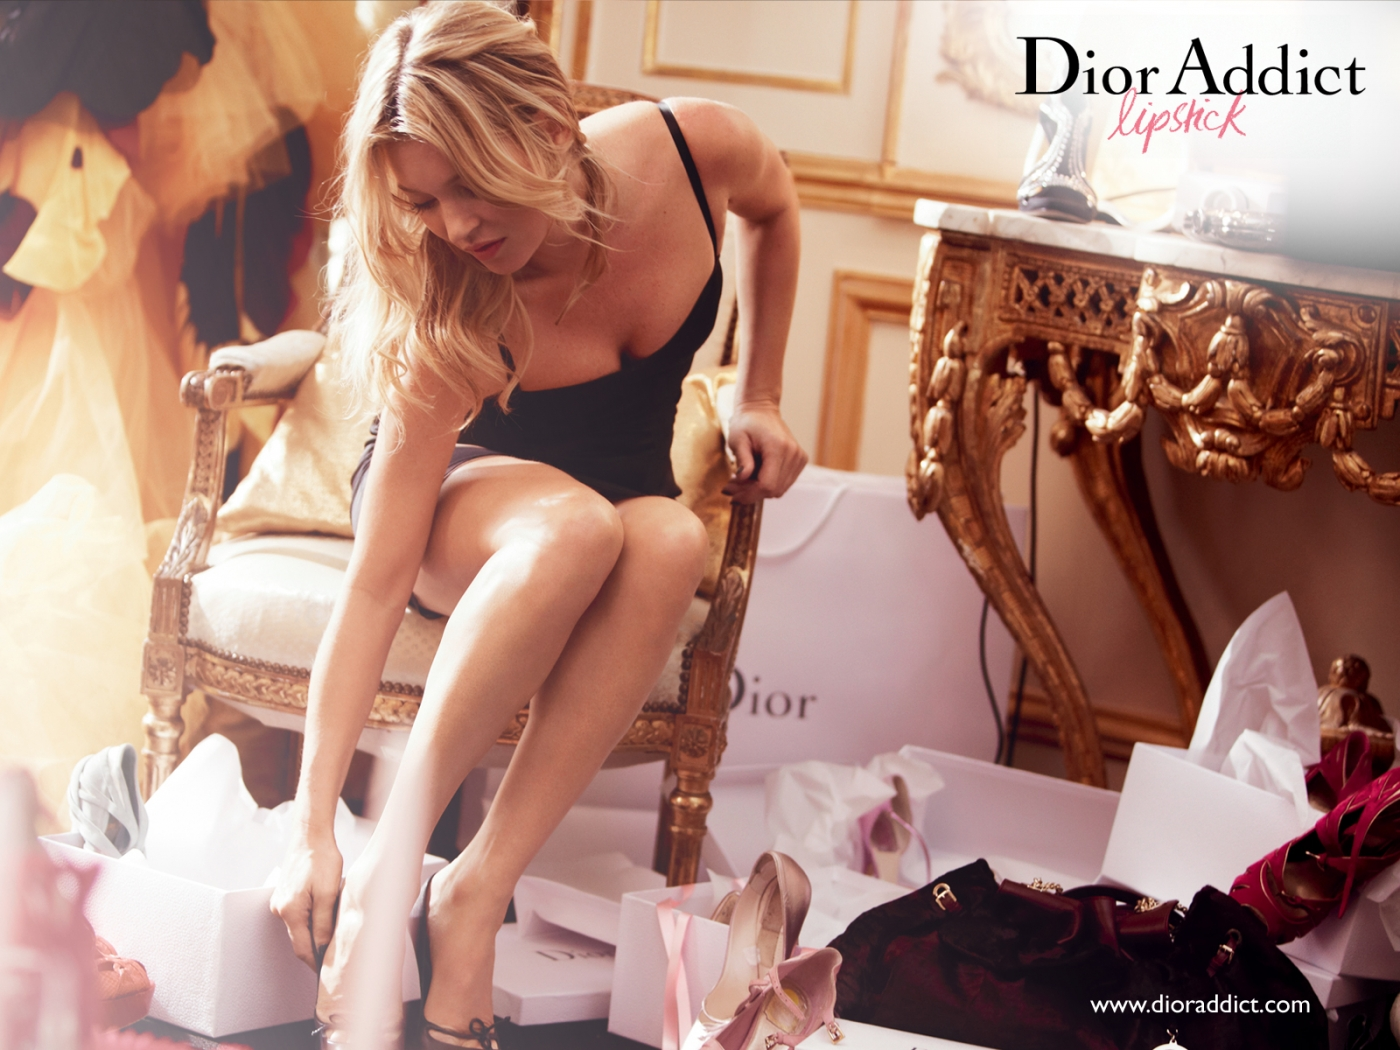 via fashioned by love | Kate Moss in Dior Addict Lipstick Spring/Summer 2011 campaign